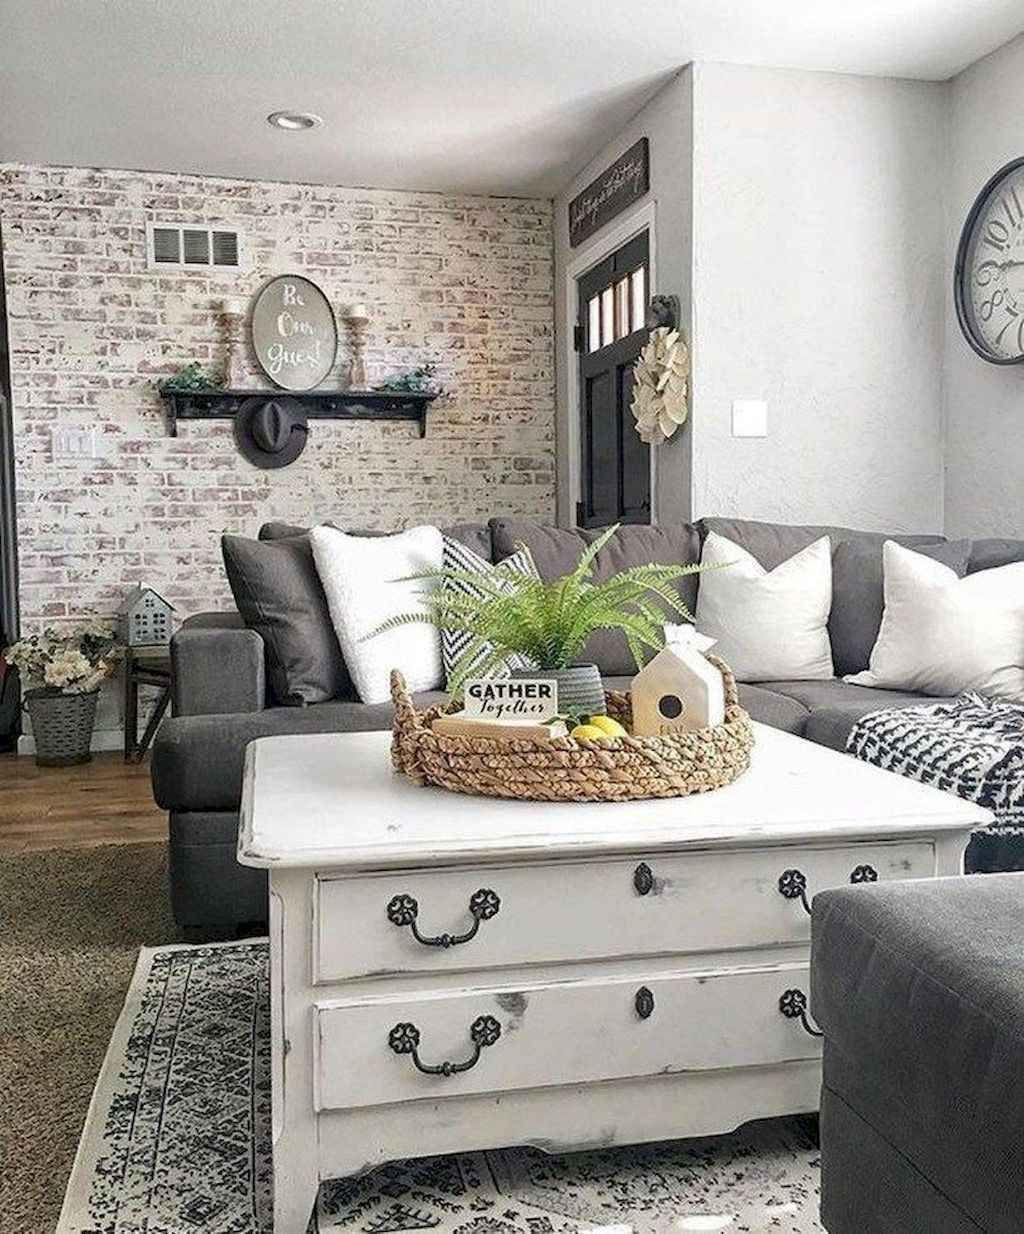 01 Modern Farmhouse Living Room Makeover Decor Ideas in